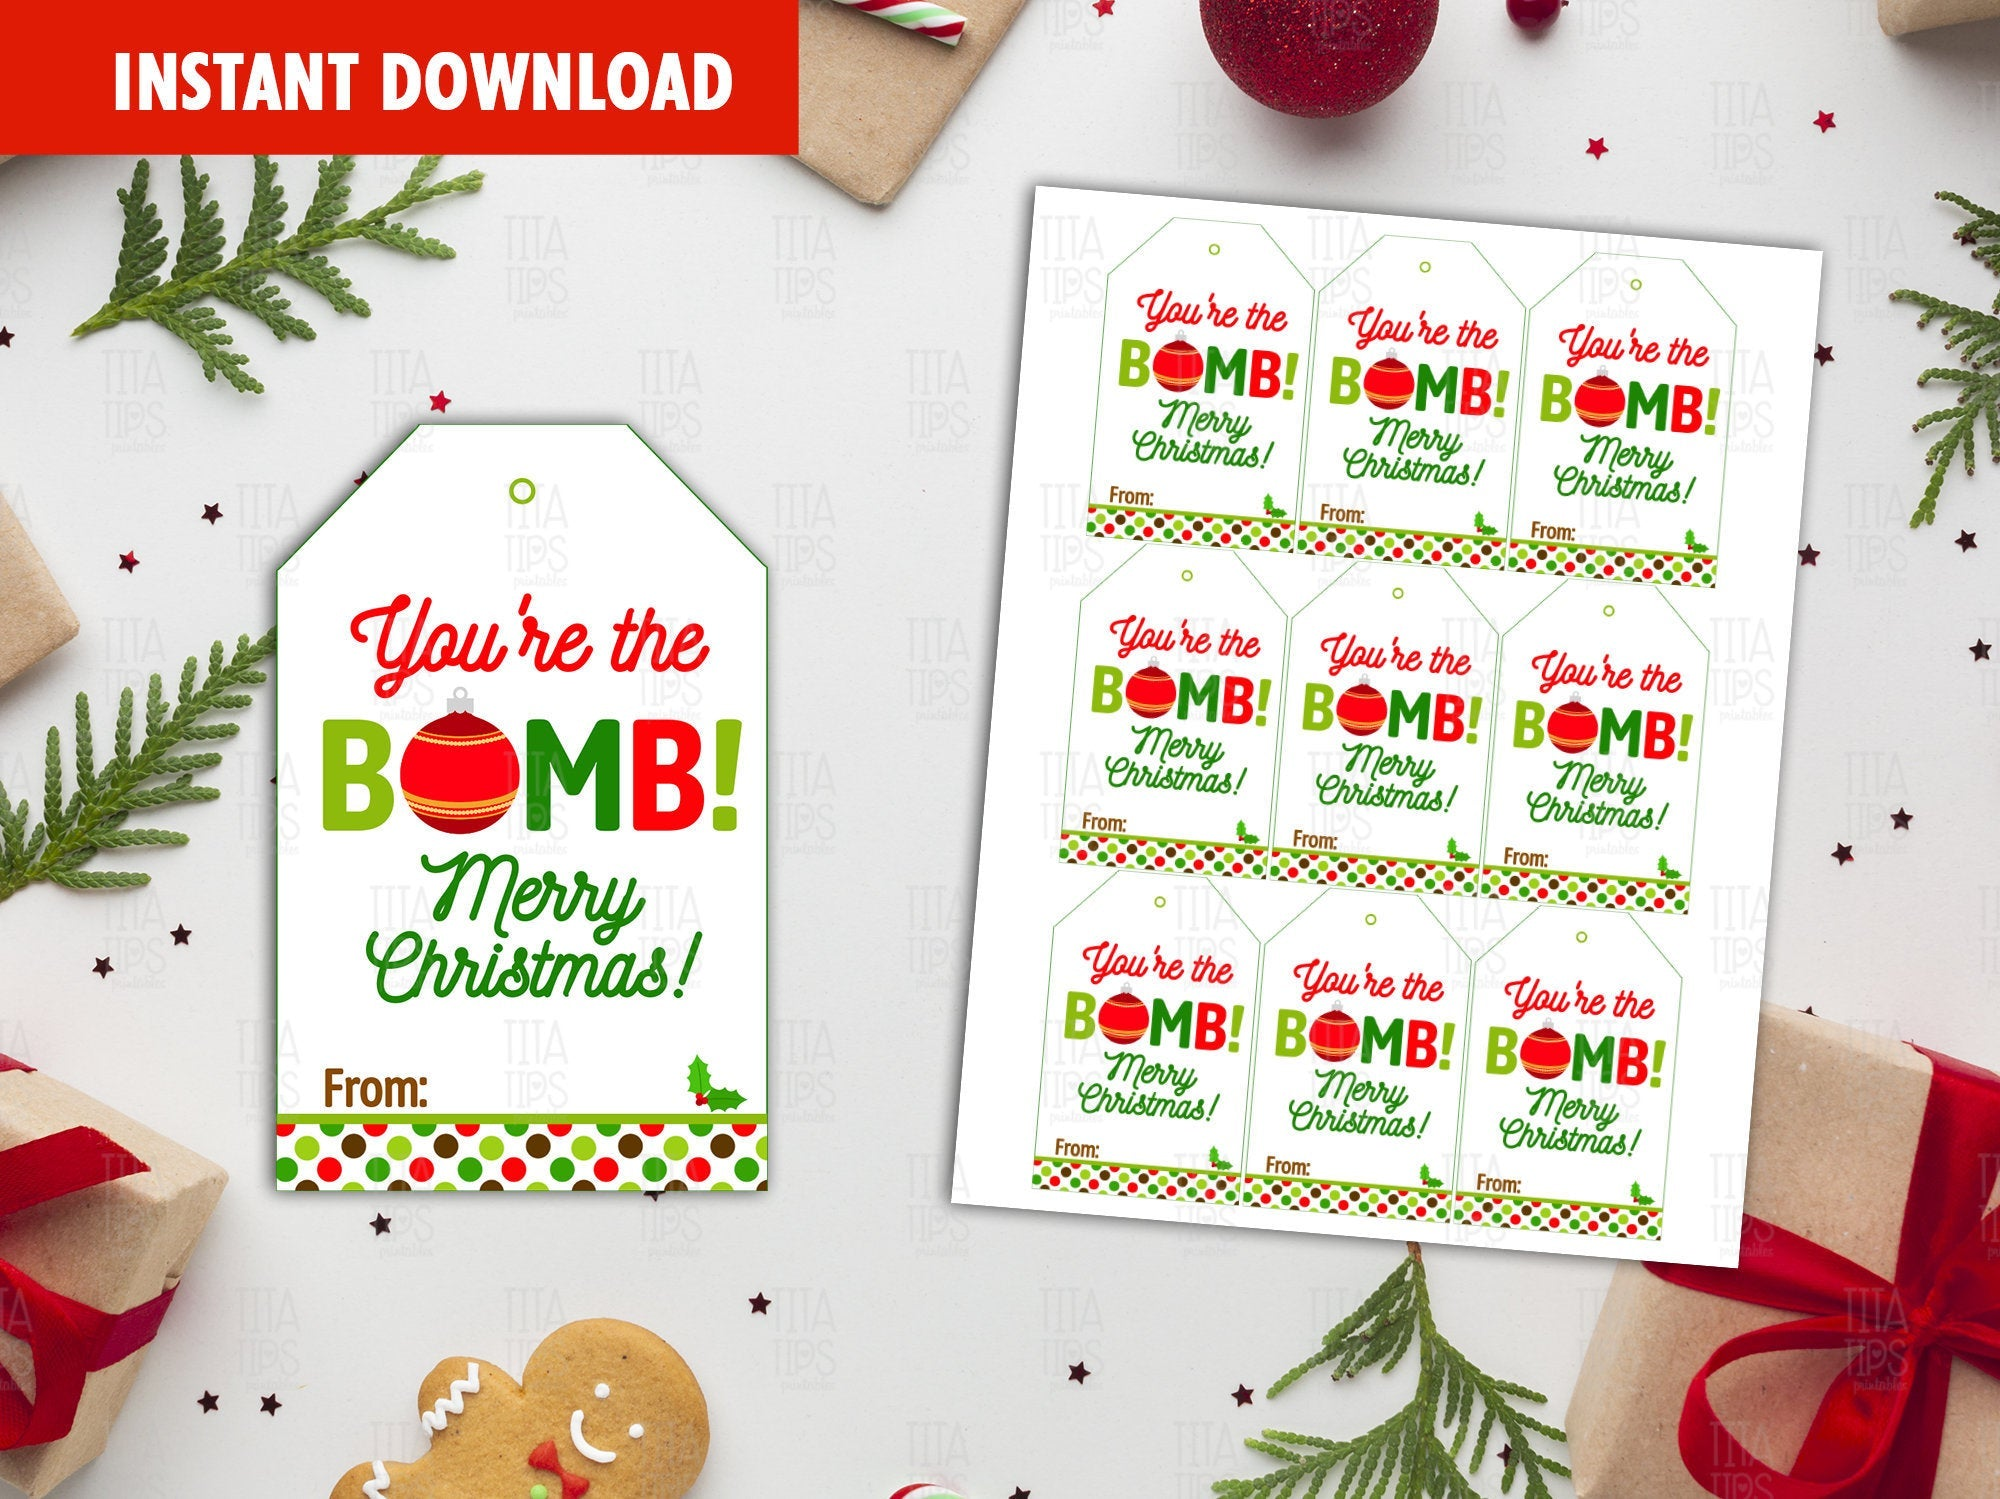 You're the BOMB Gift Tag, Merry Christmas Printable Card, Classmate Holidays Exchange, Instant Download - TitaTipsPrintables